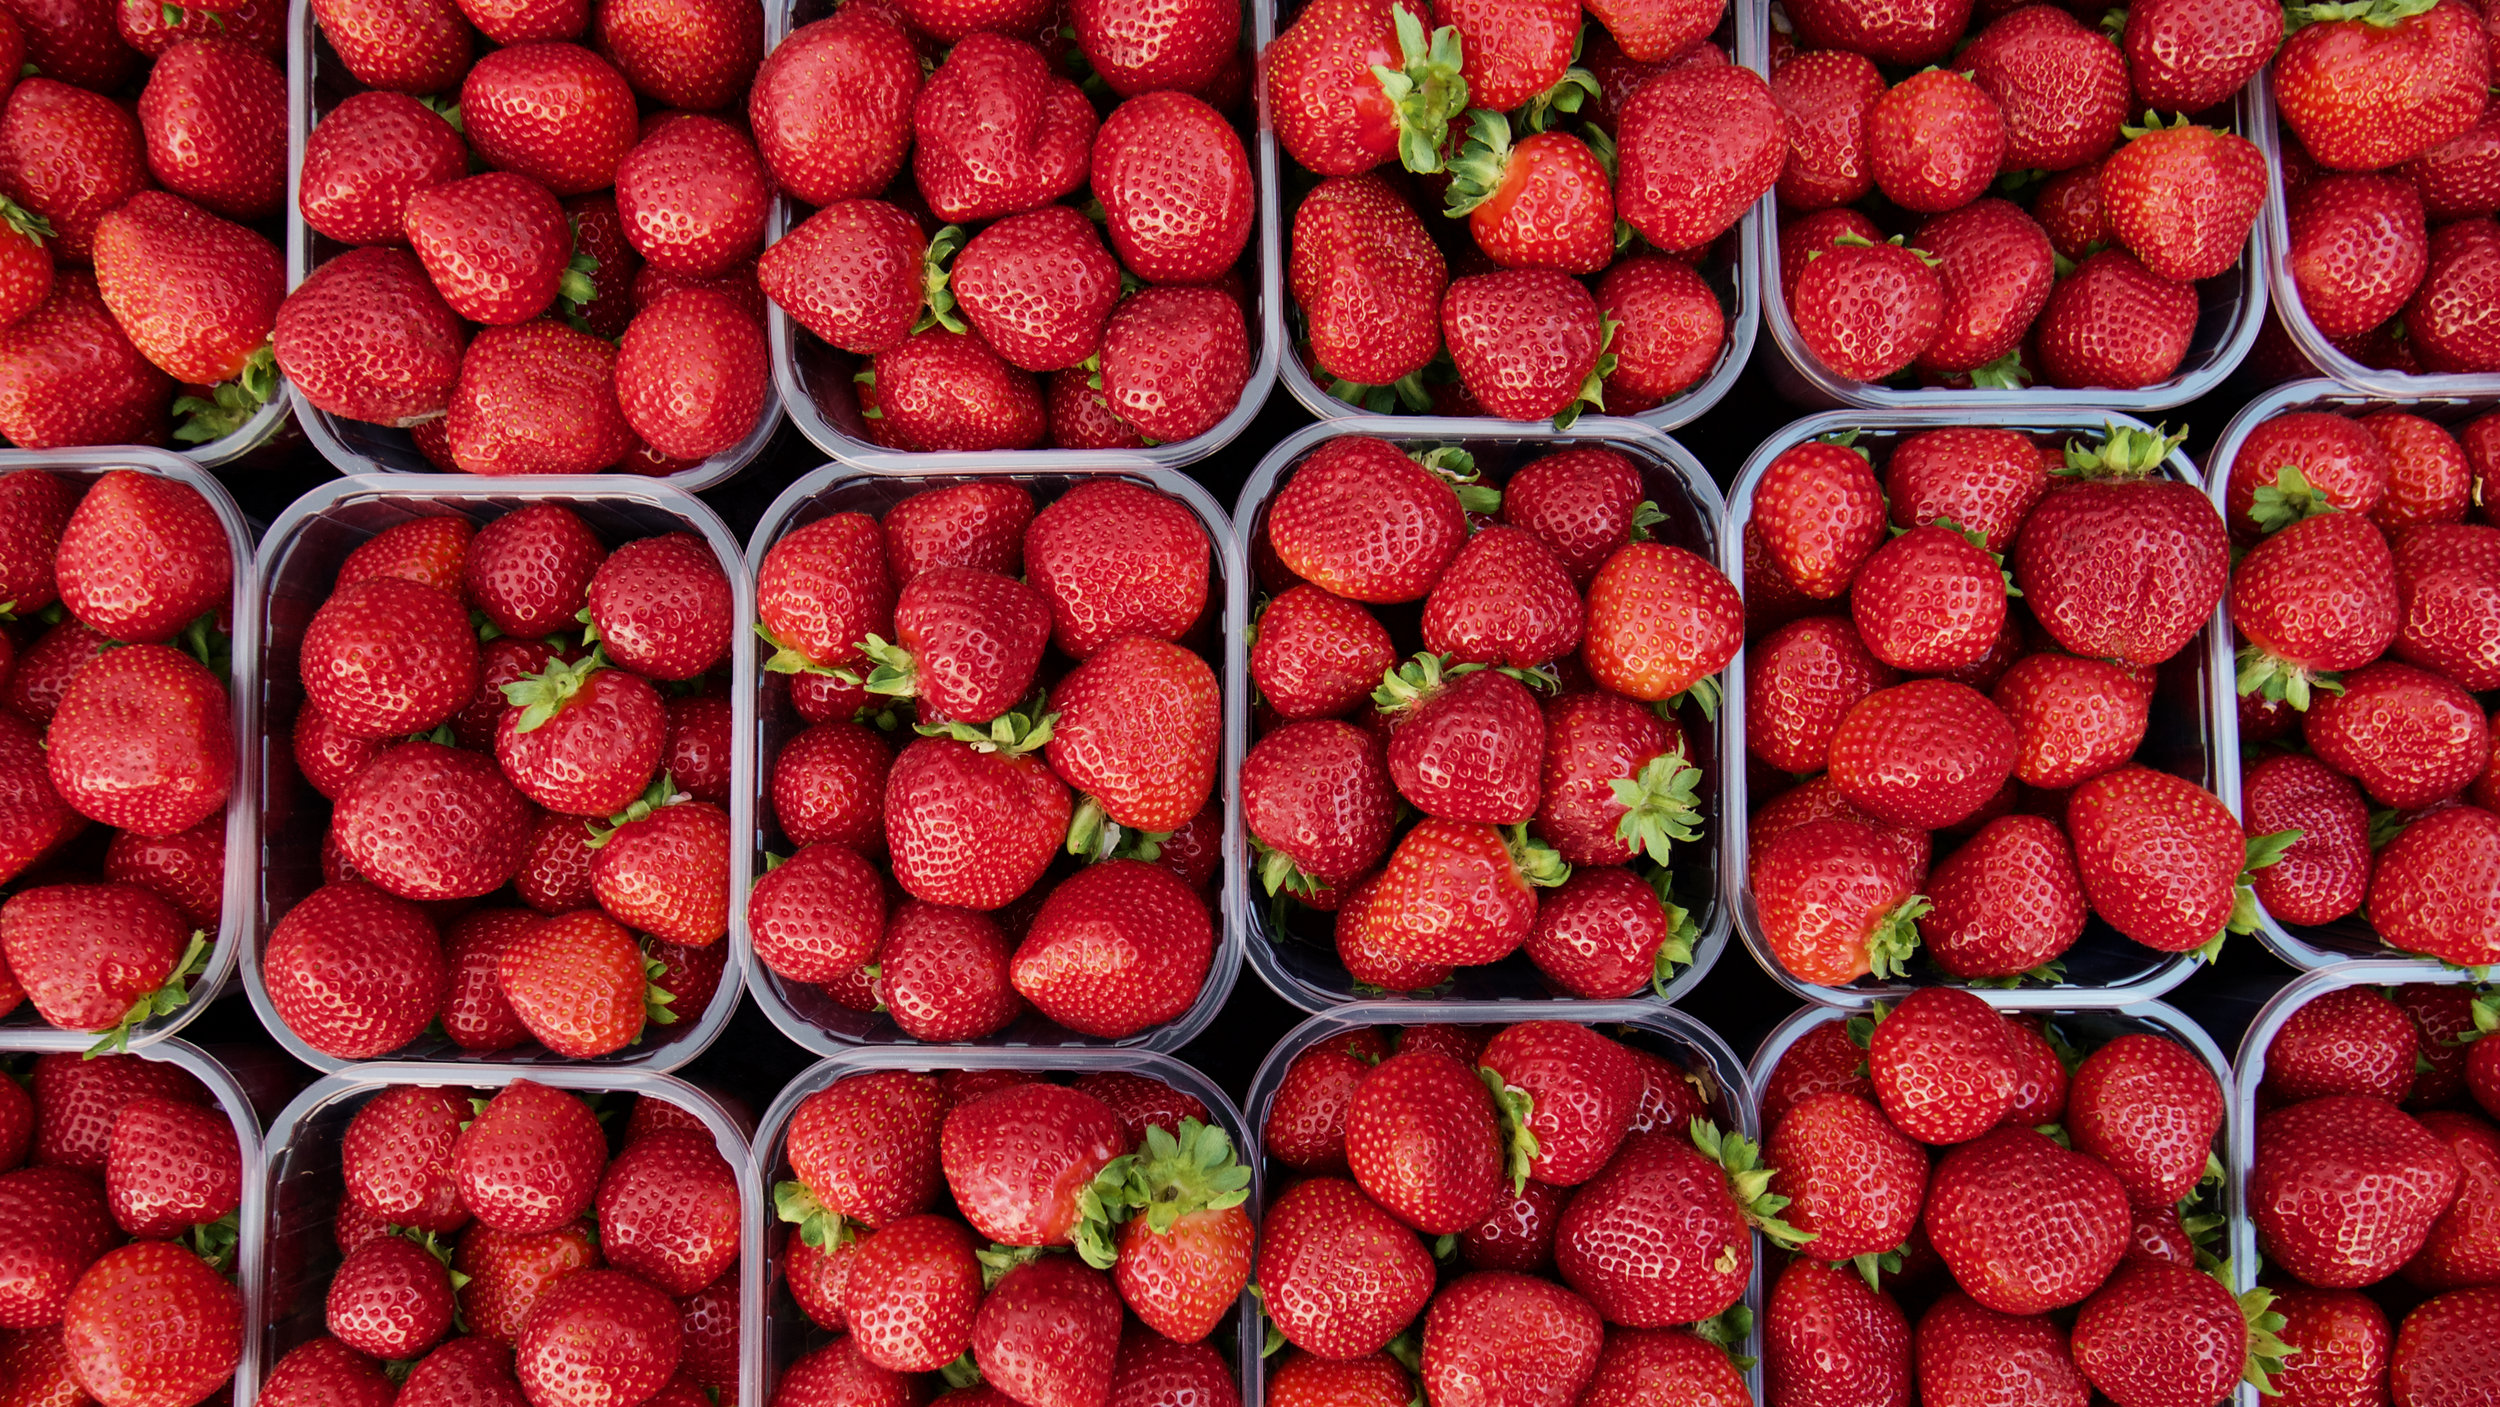 STRAWBERRIES ARE HERE! - FRESH LOCAL STRAWBERRIES HAVE ARRIVED AT THE FARM FROM NOURSE FARM WHATLEY, MA